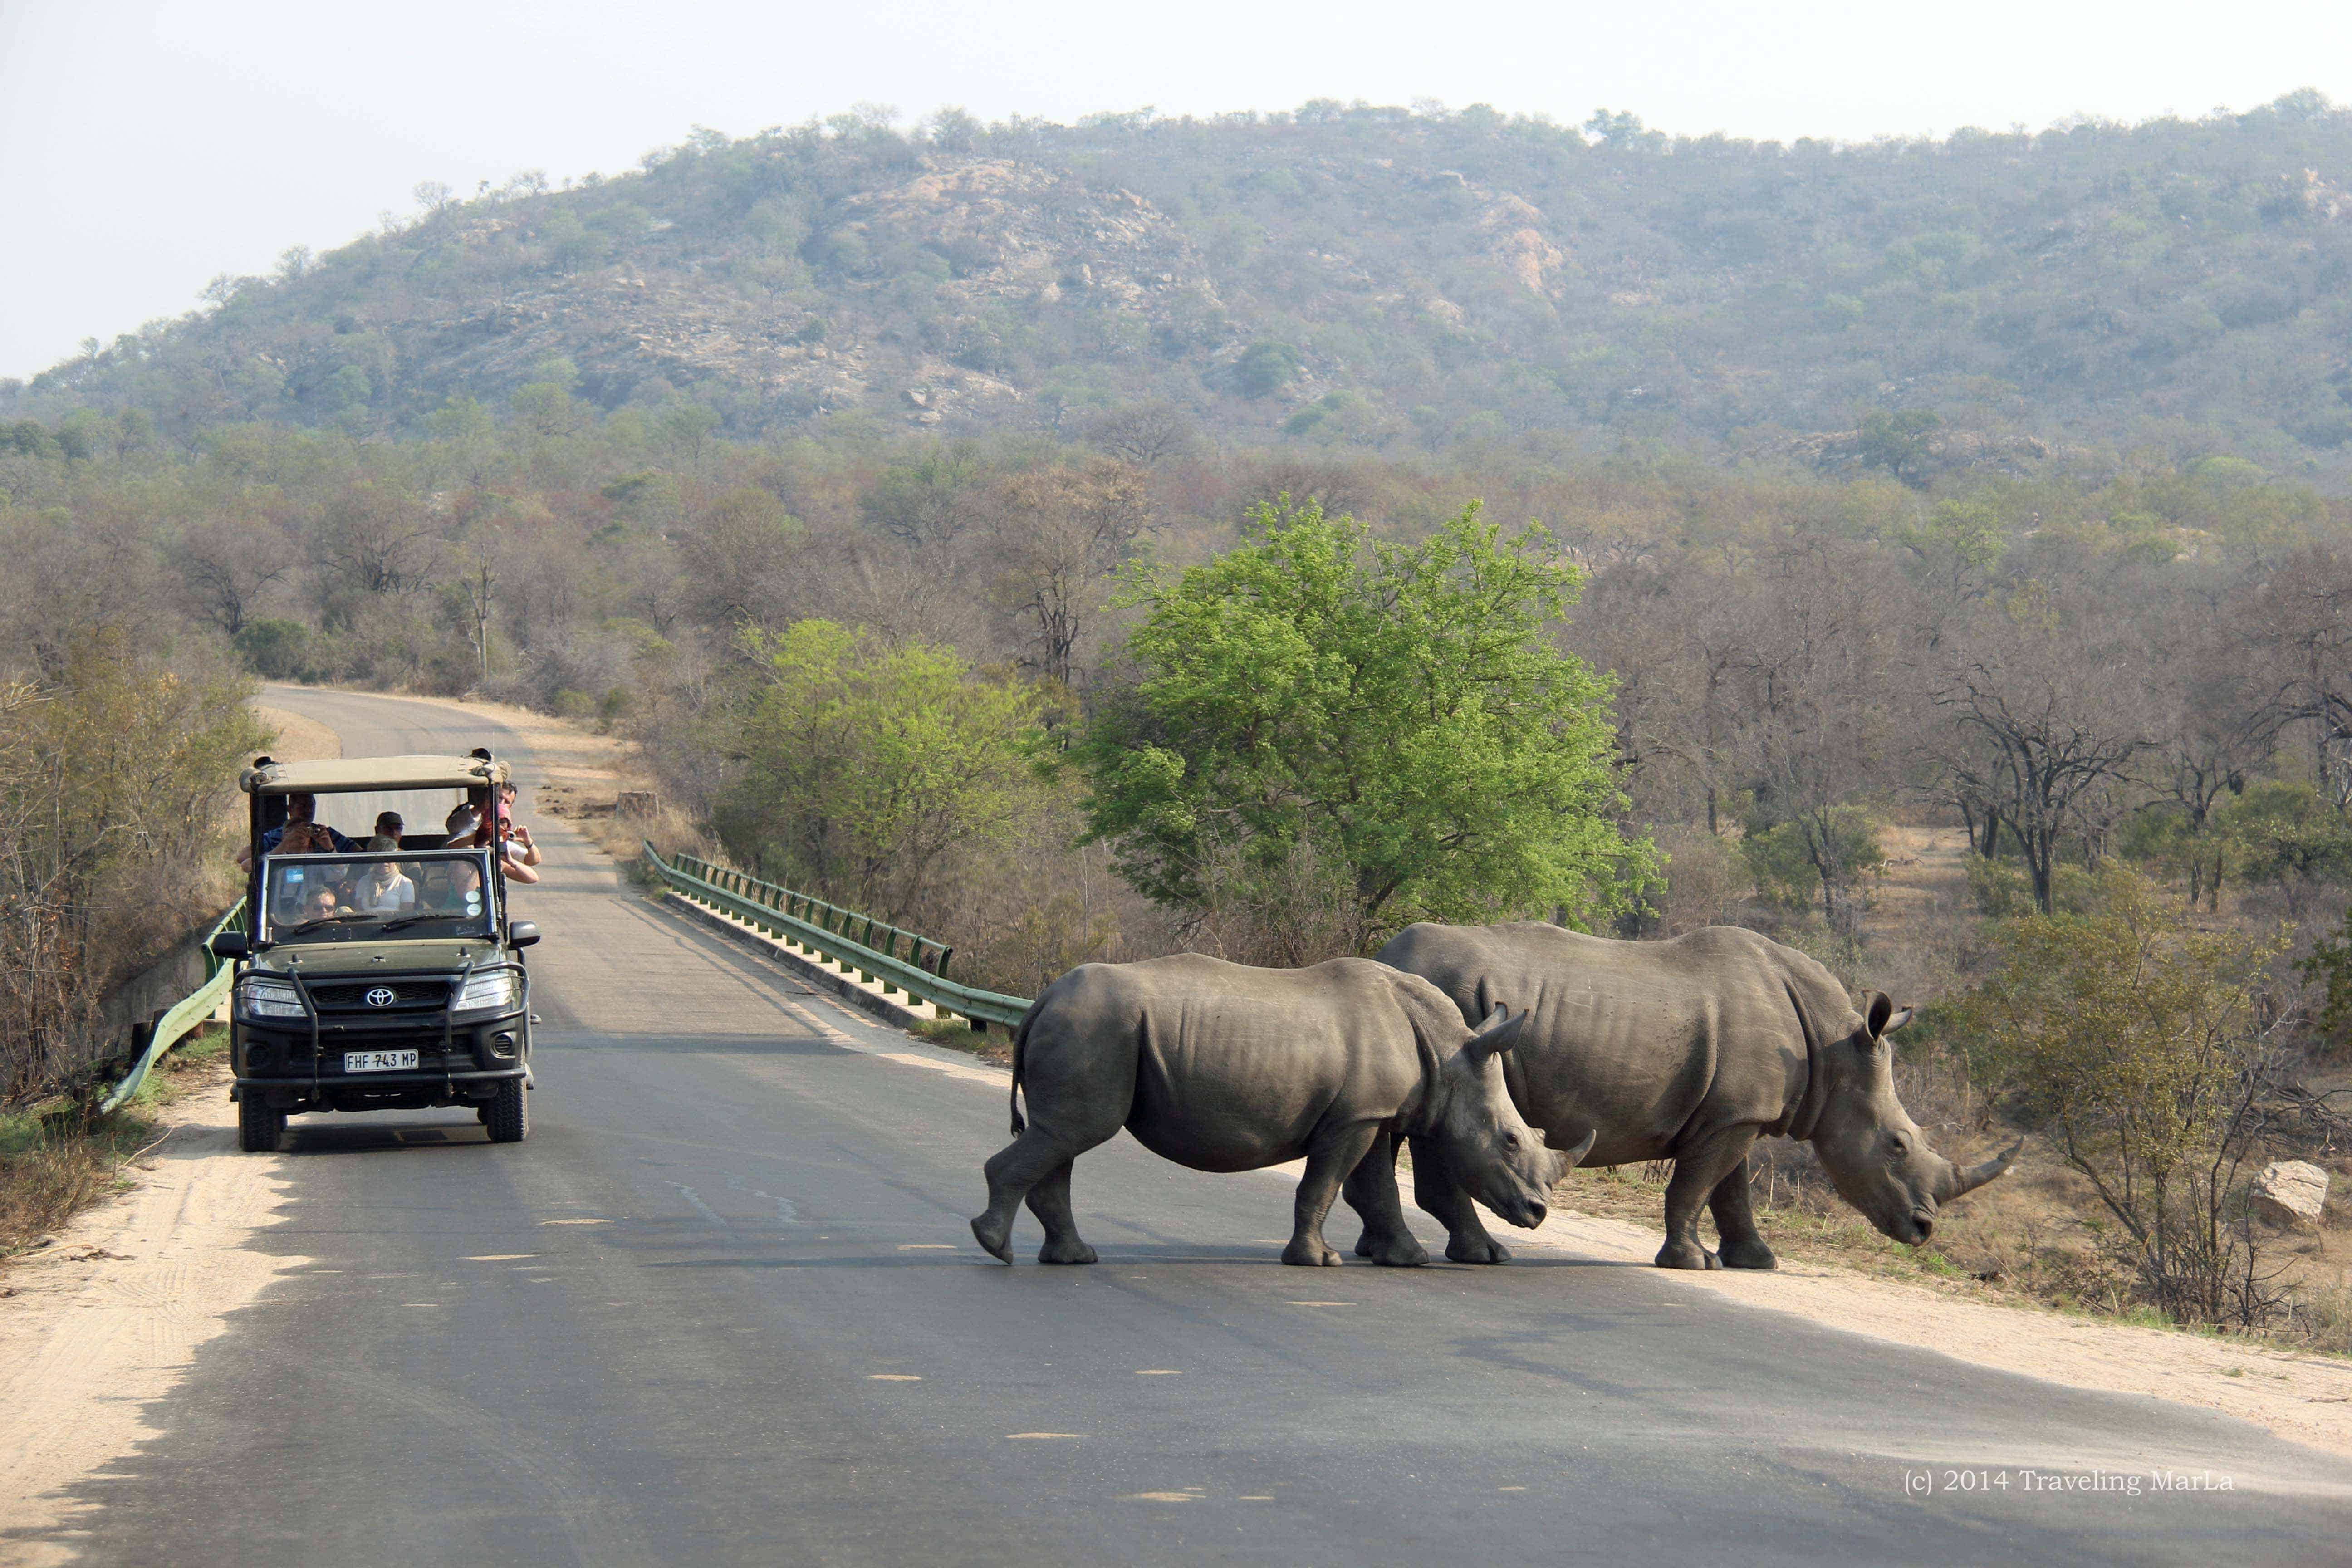 description of khadimnagar nationa park tour The tour guide in charge will make use of a step-on tour guide when entering a large national park or attraction like disneyworld in this instance, the step-on guide has far more intricate knowledge about the location.